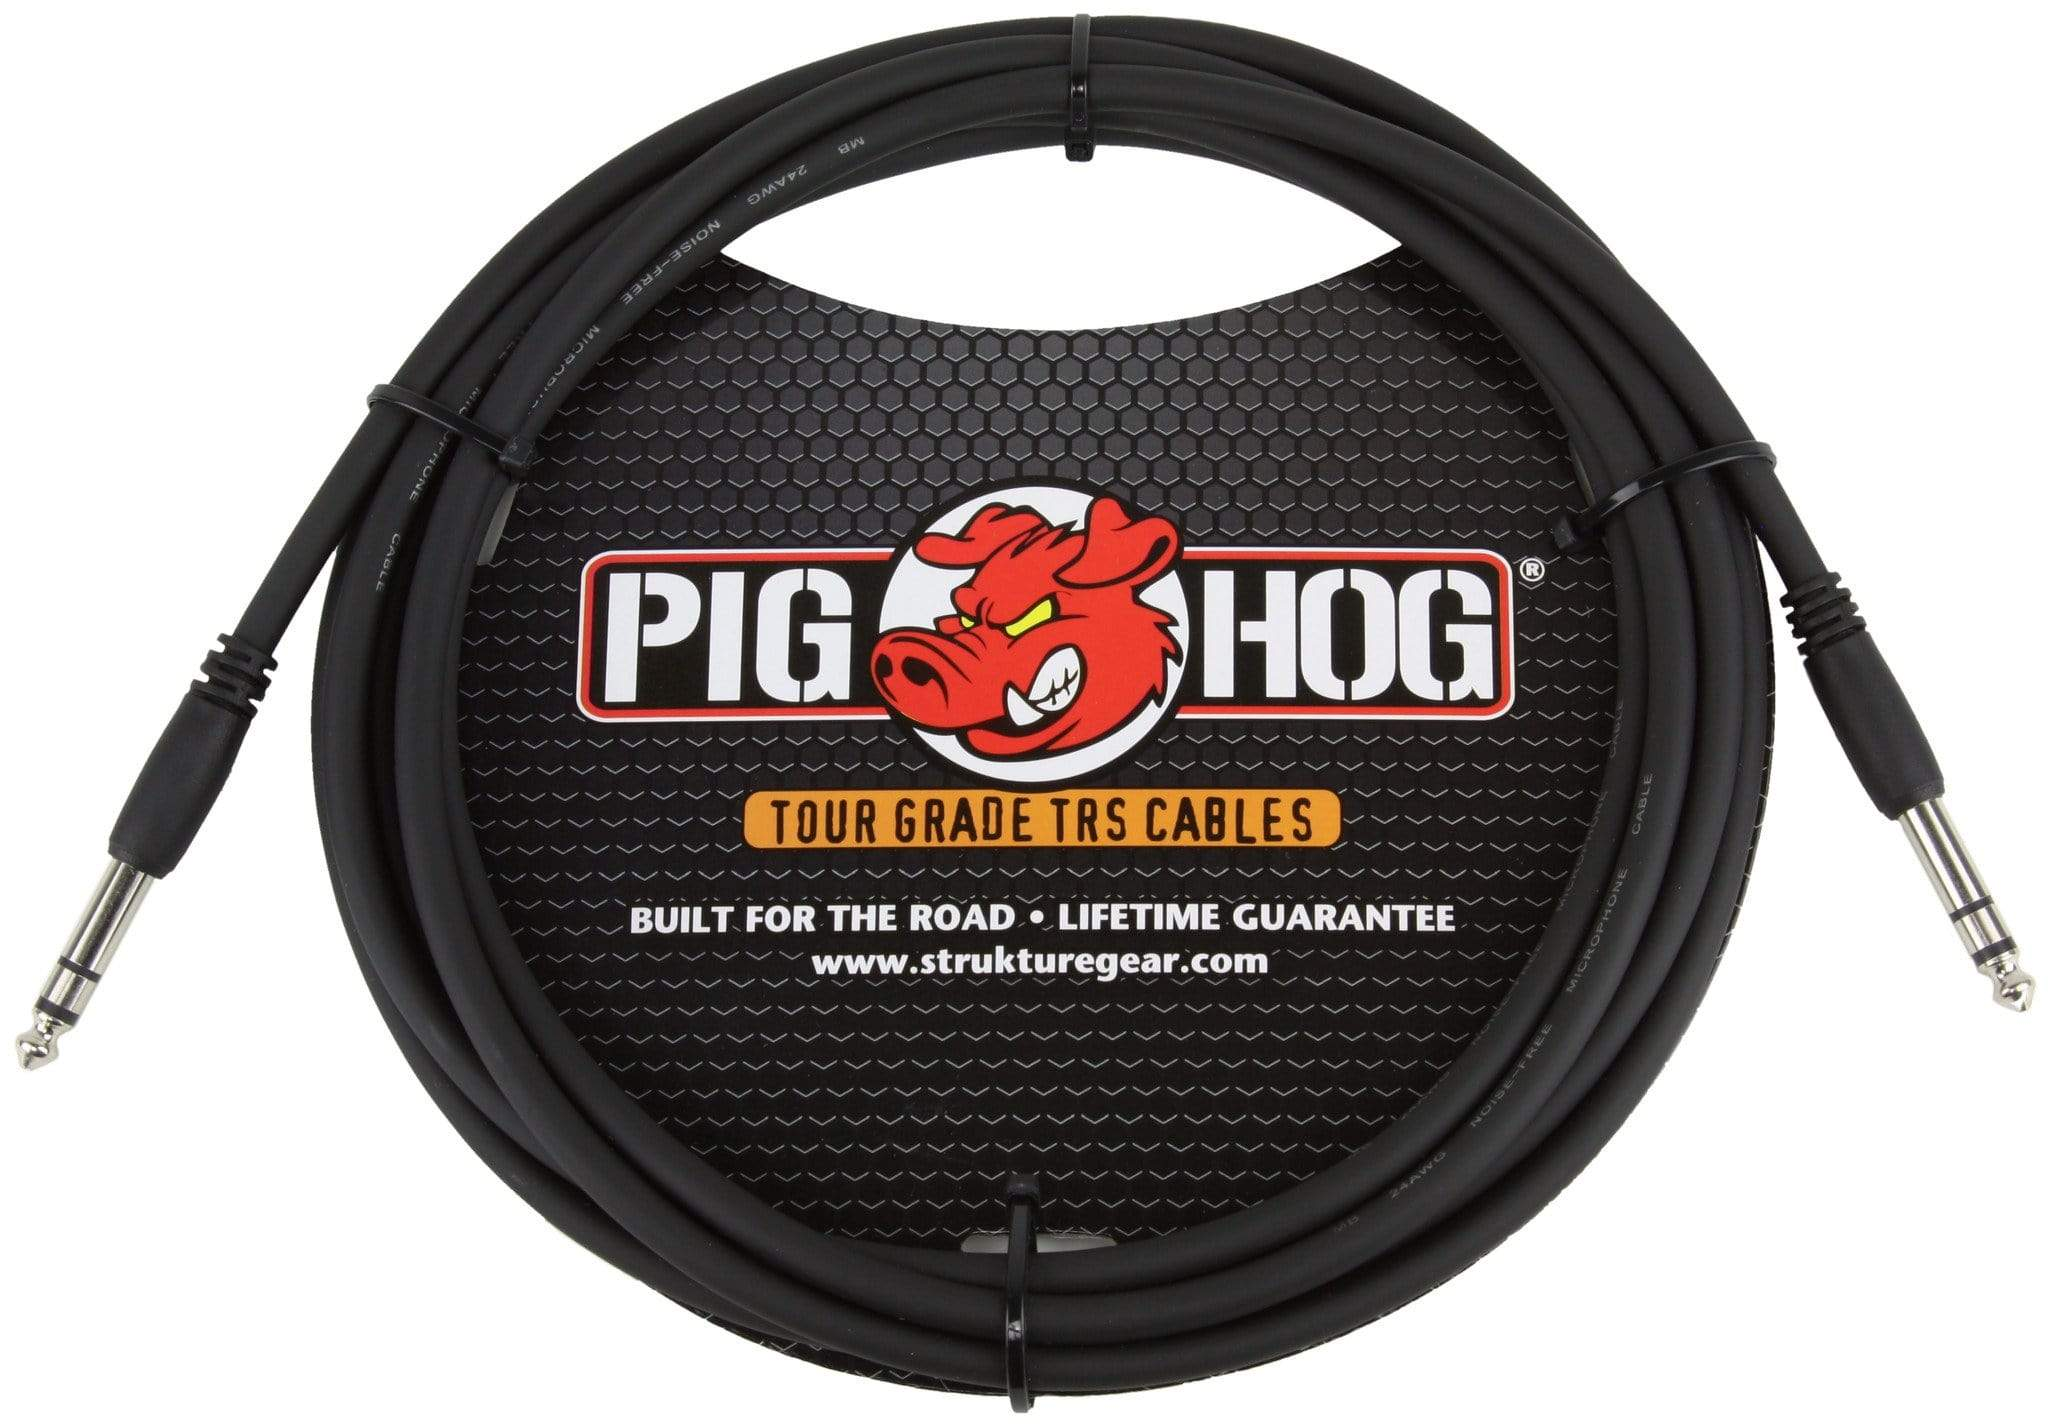 "PIG HOG INTERCONNECT CABLES Pig Hog 10 FT Foot 1/4"" TRS Balanced Stereo to 1/4"" TRS Cable Plug 8mm"